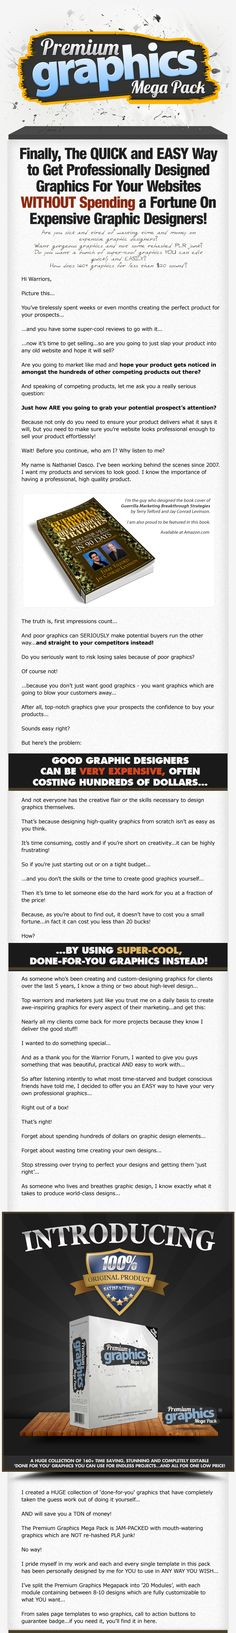 This awesome graphics package is a dimesale. Some amazing graphics for sales pages and more -